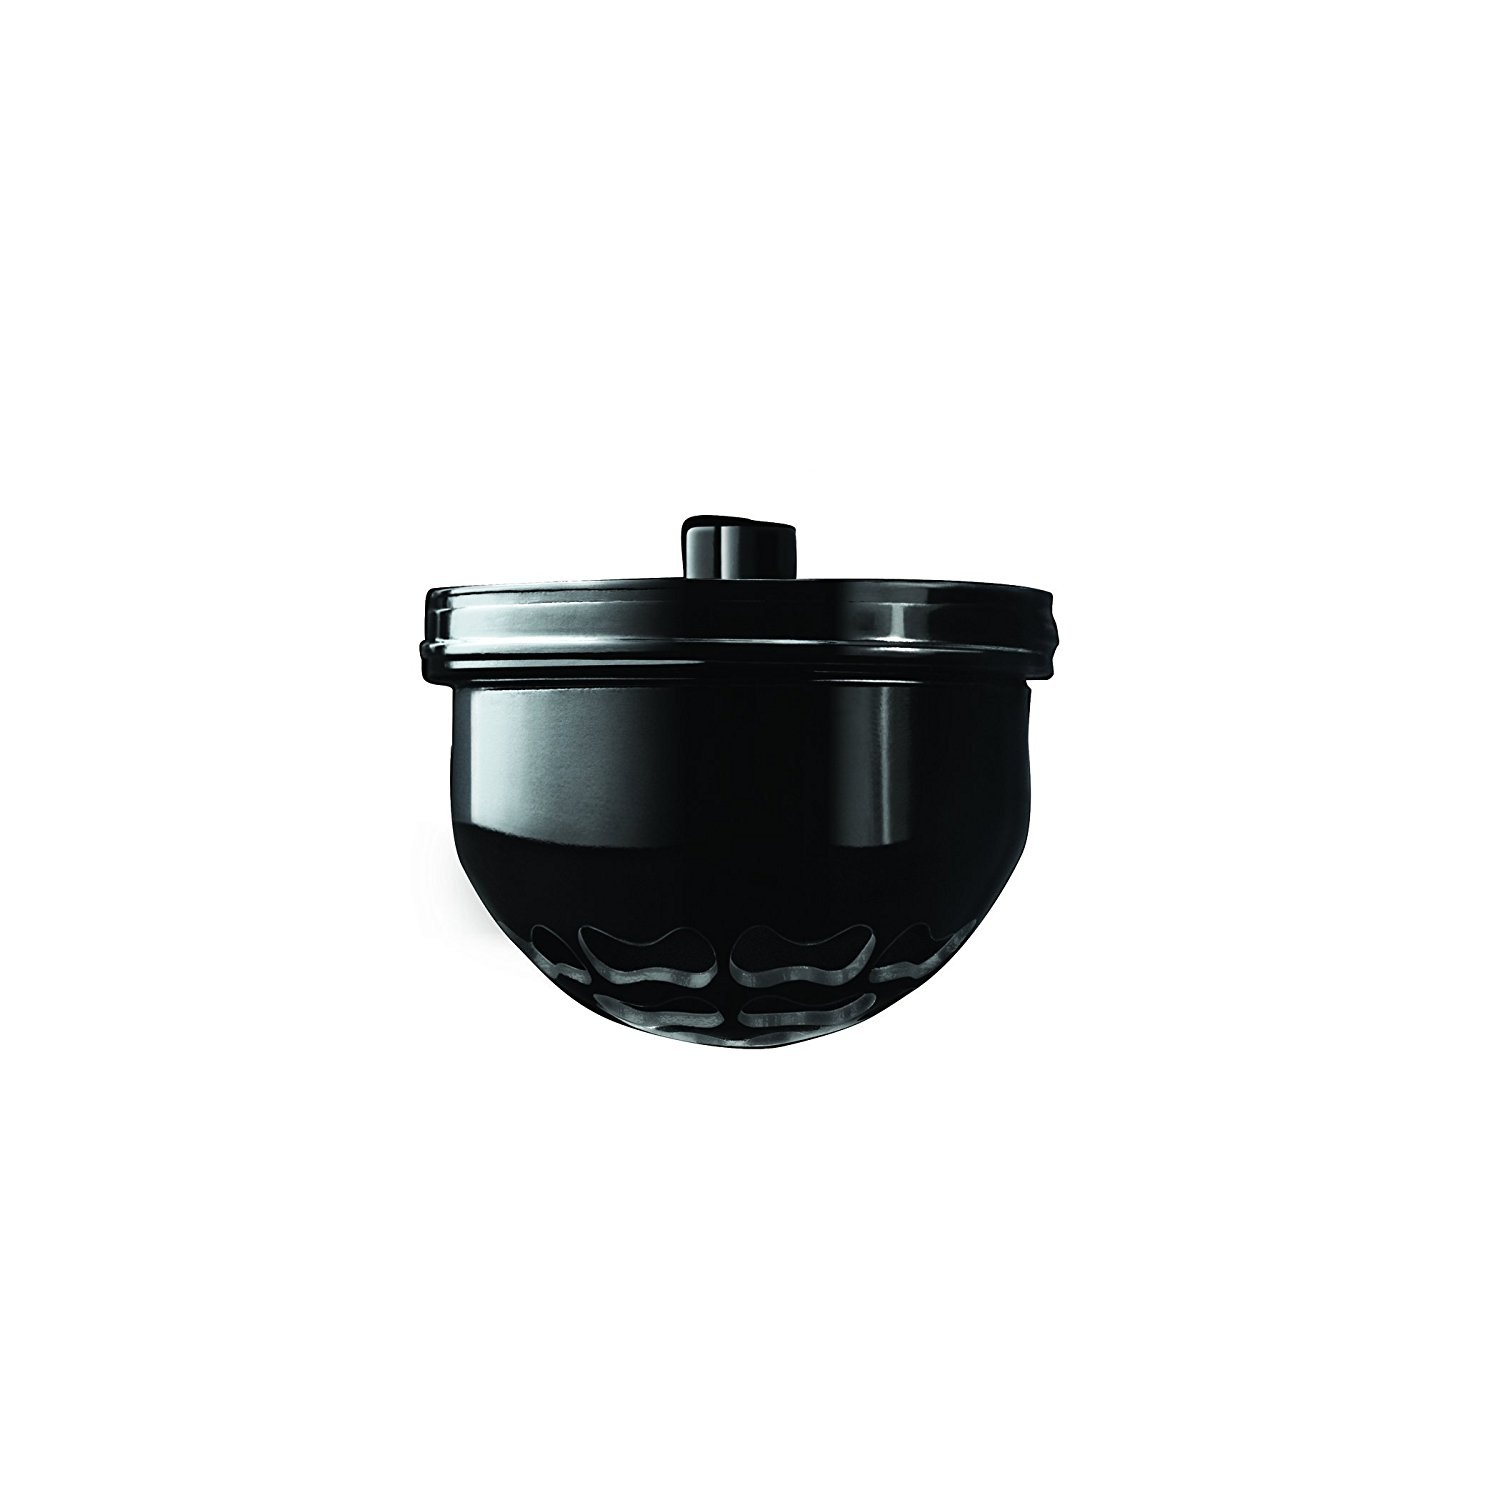 418e84bc10 Bobble 2 Litre Jug Replacement filter, Black, Pack of 1 by Bobble - Shop  Online for Kitchen in New Zealand